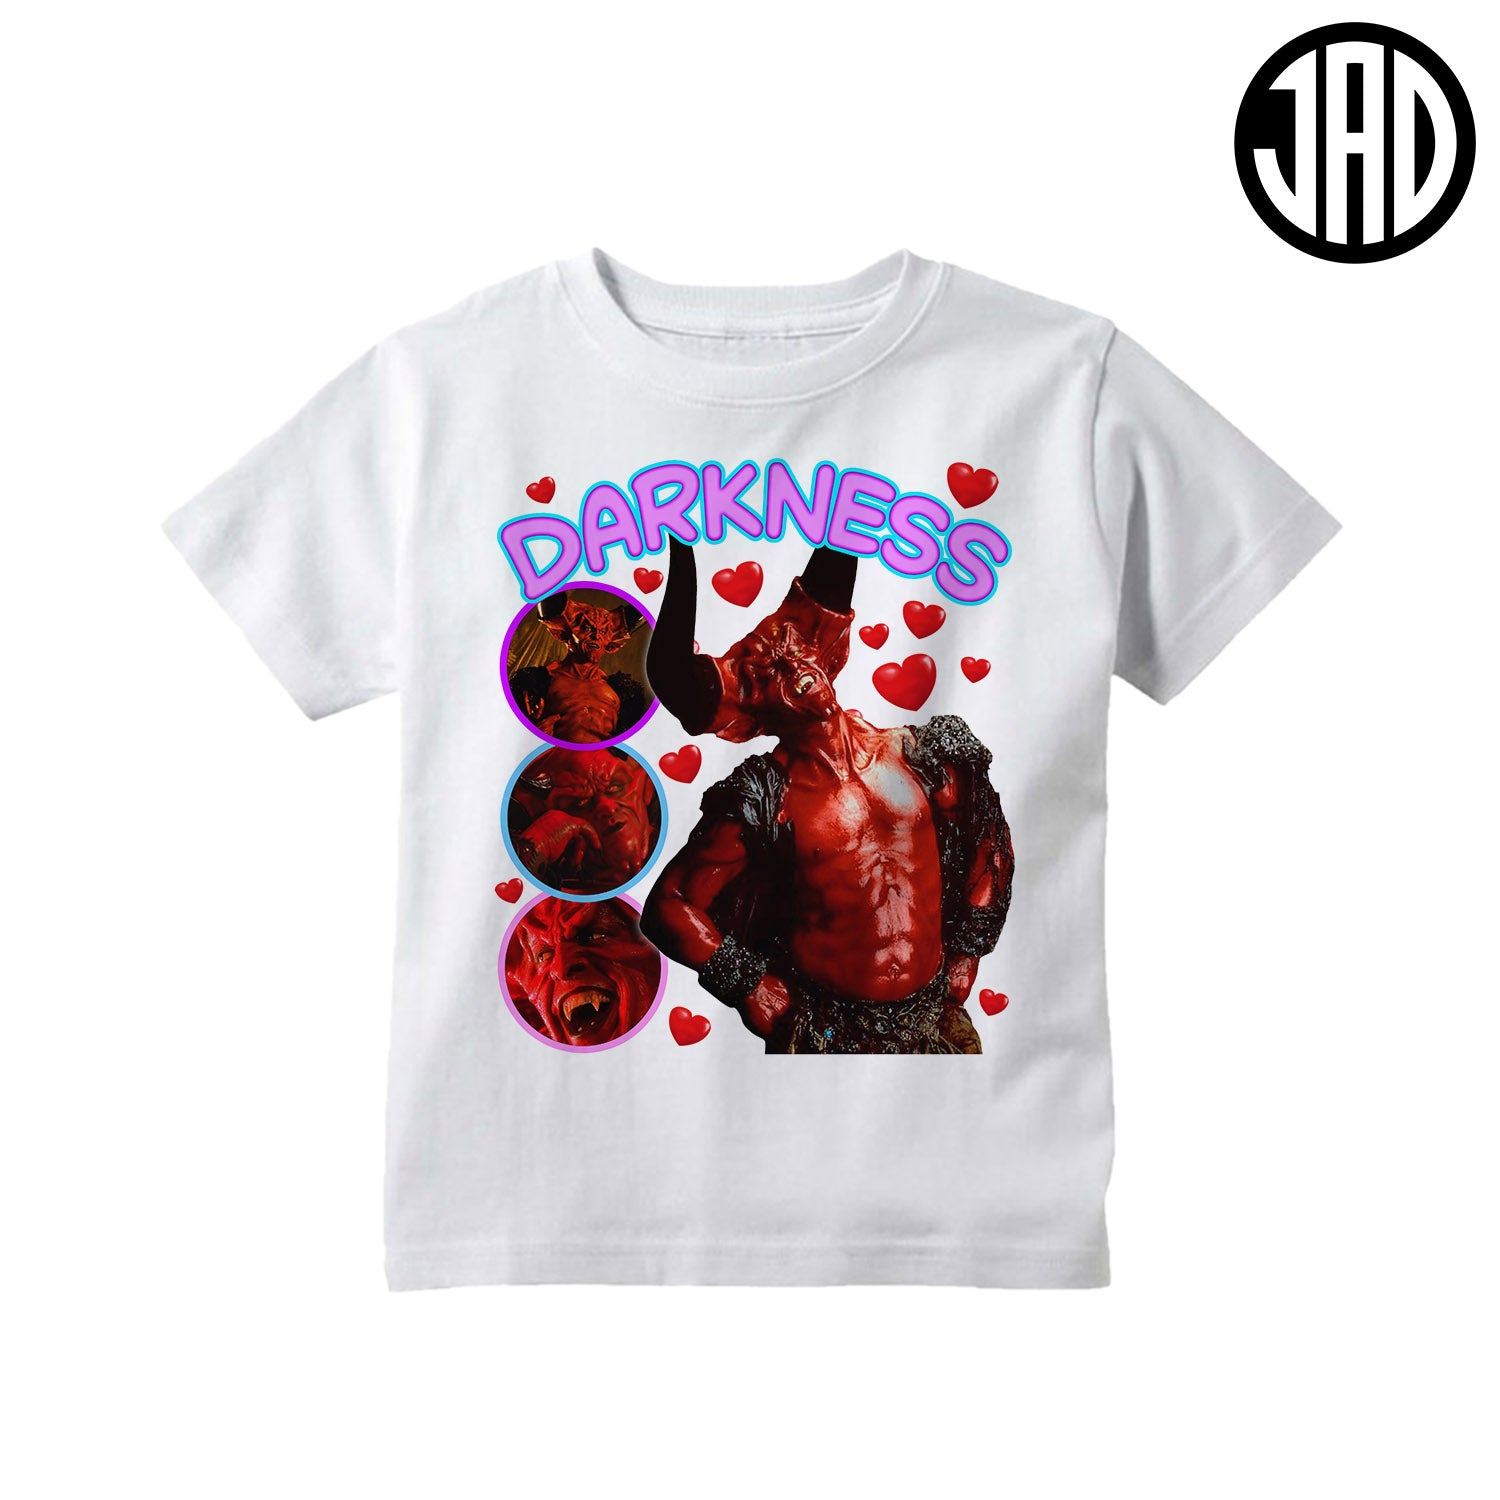 Darkness - Kid's Tee